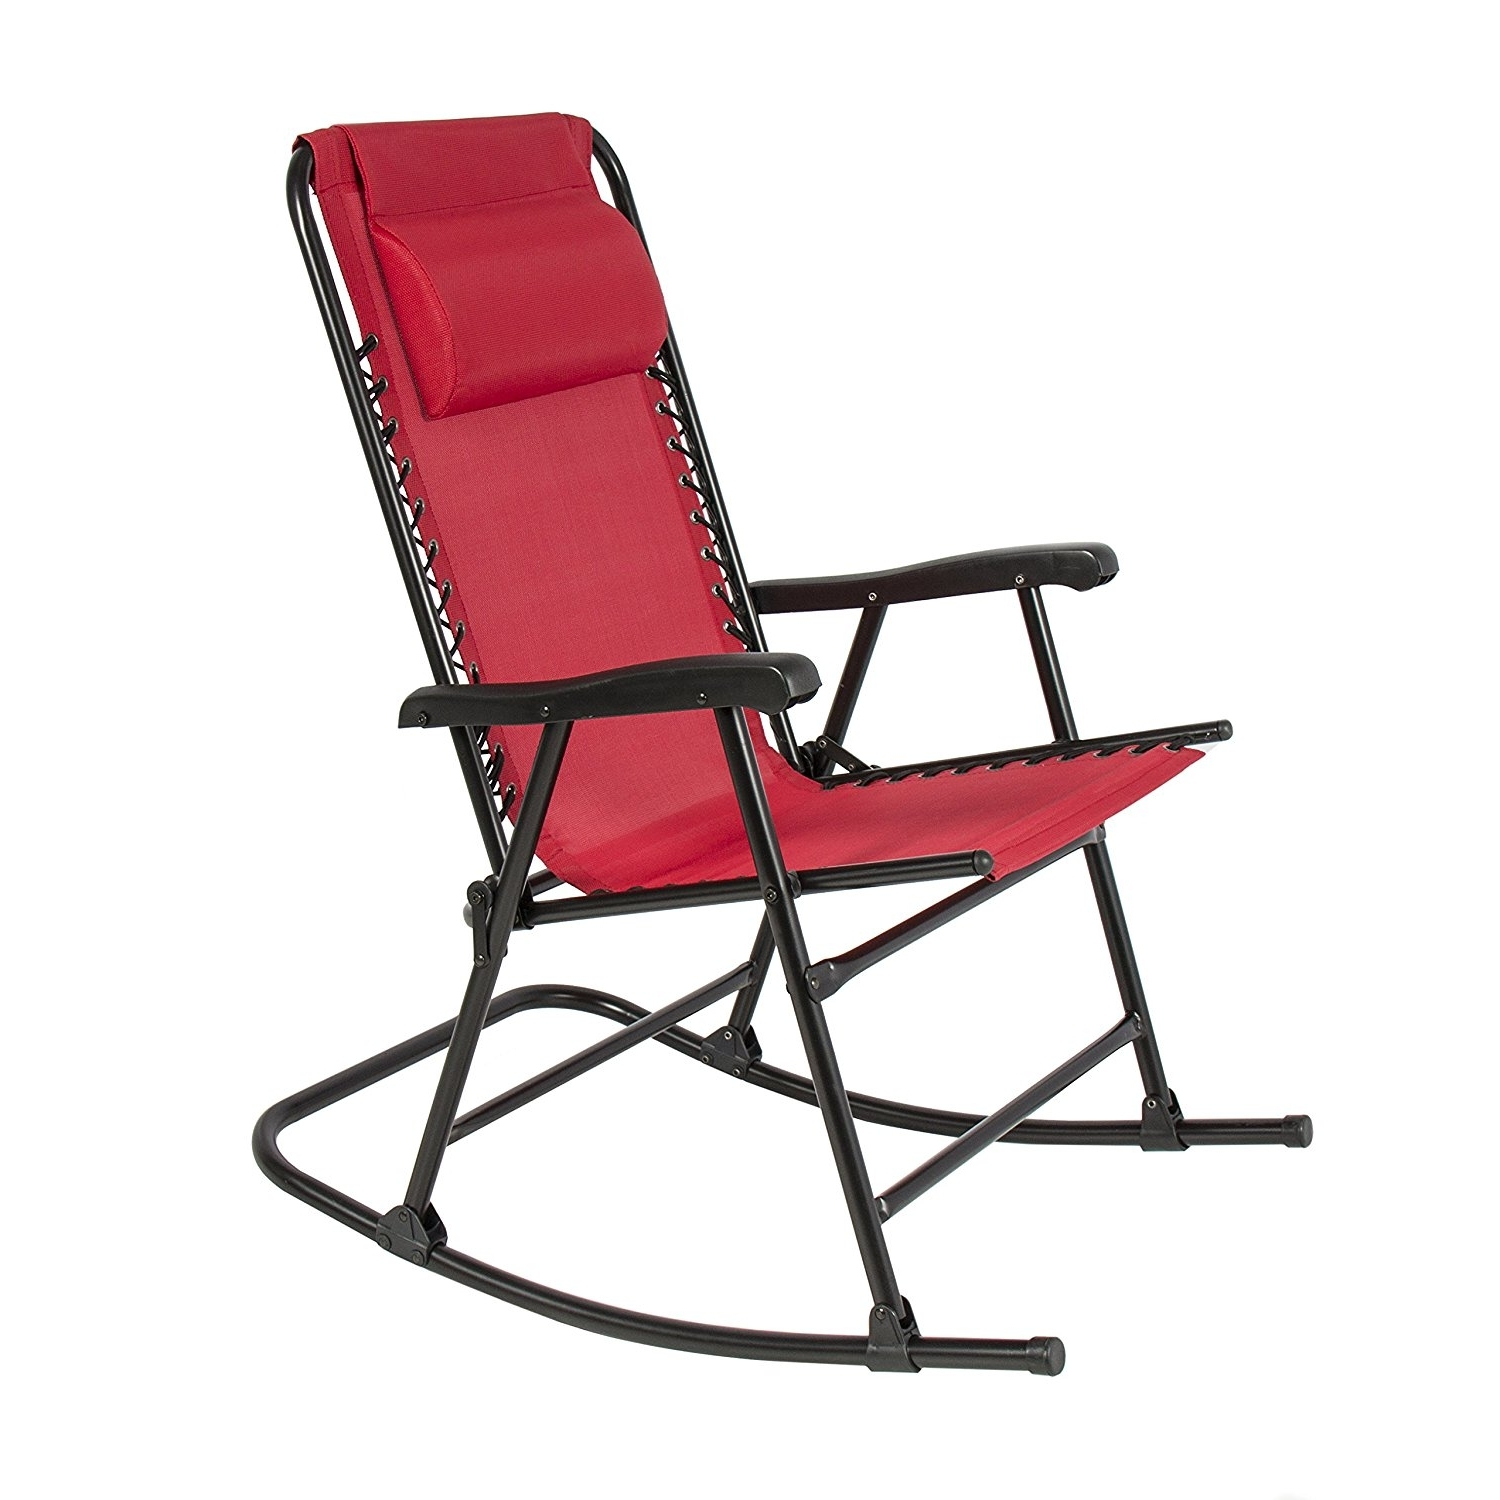 Red Patio Rocking Chairs For Most Current Red Folding Patio Chairs – Decco.voiceoverservices (View 8 of 15)